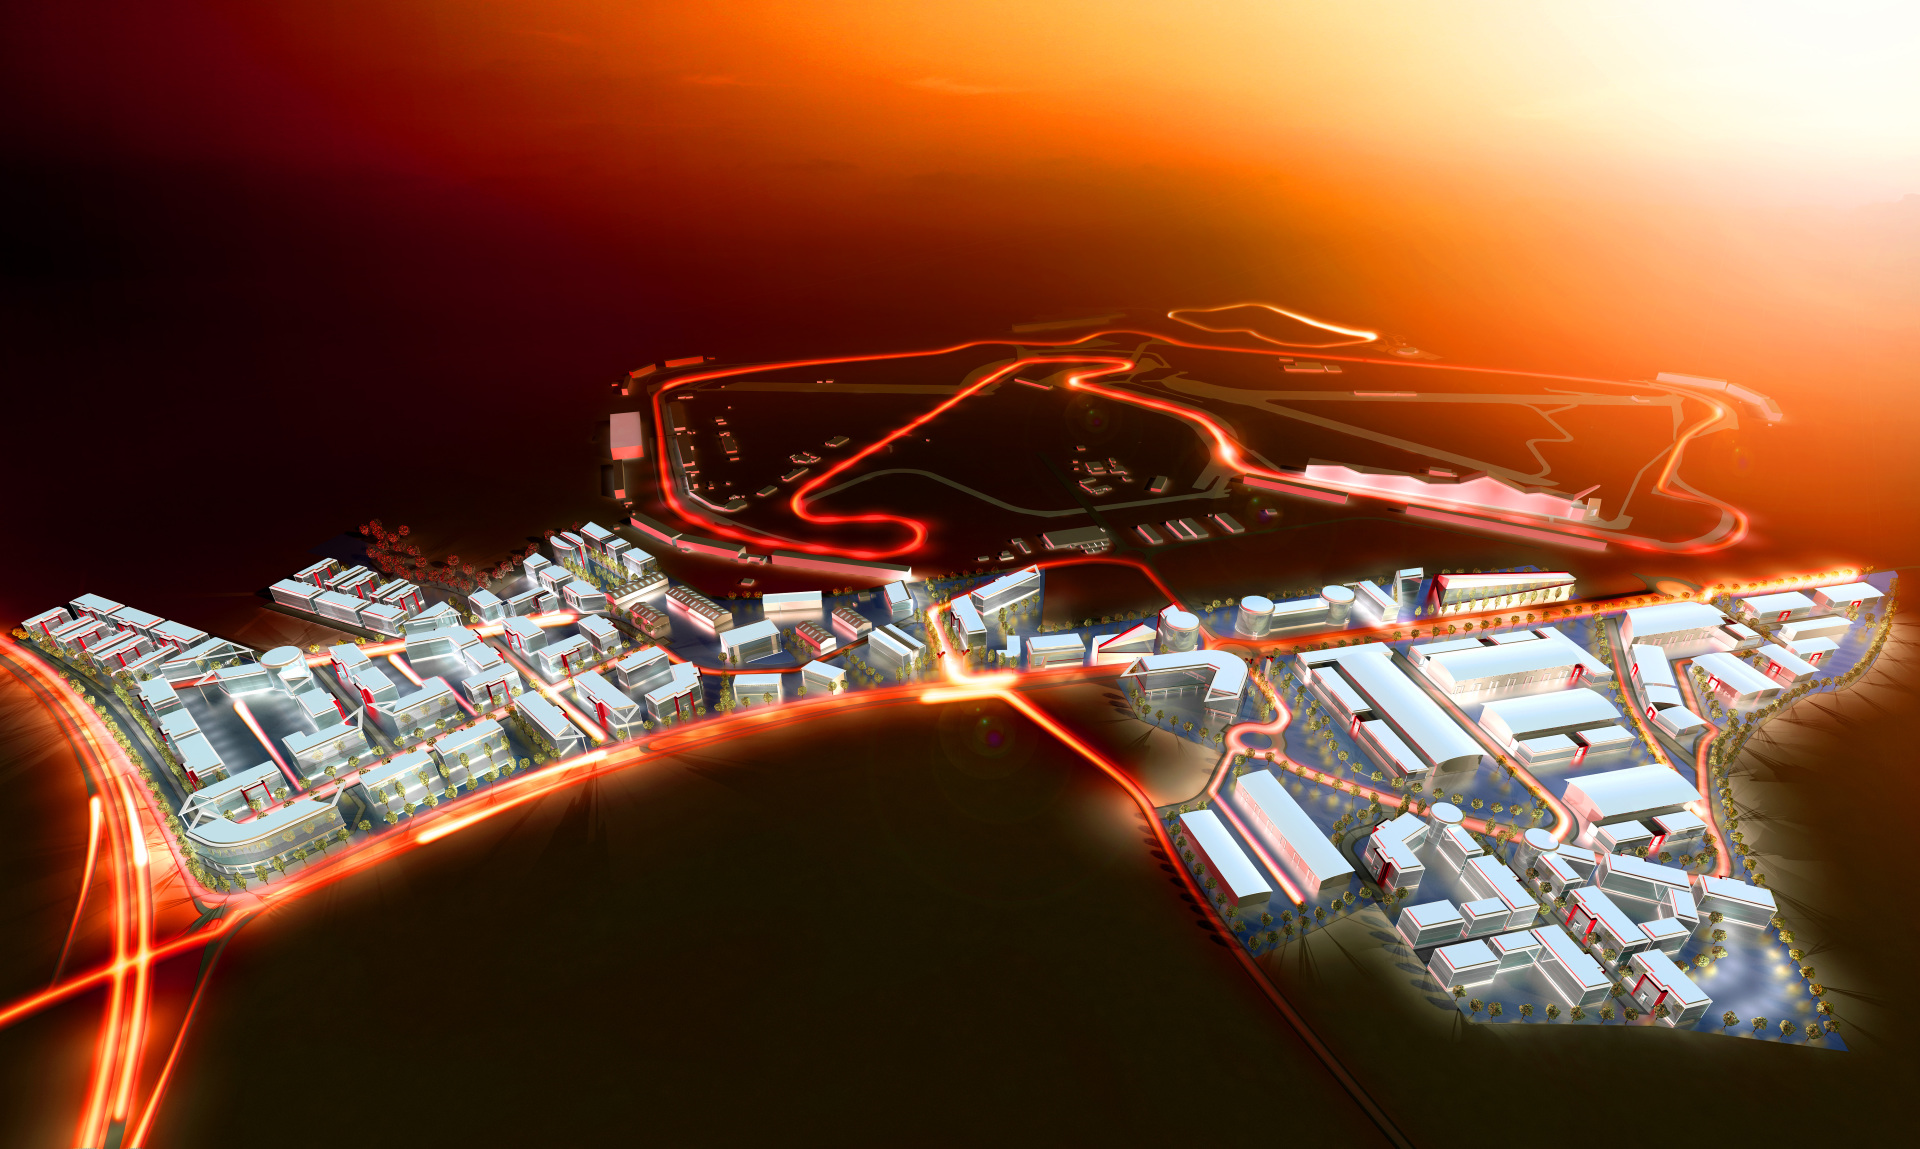 Silverstone Park will become a global hub for engineering, innovation and business development